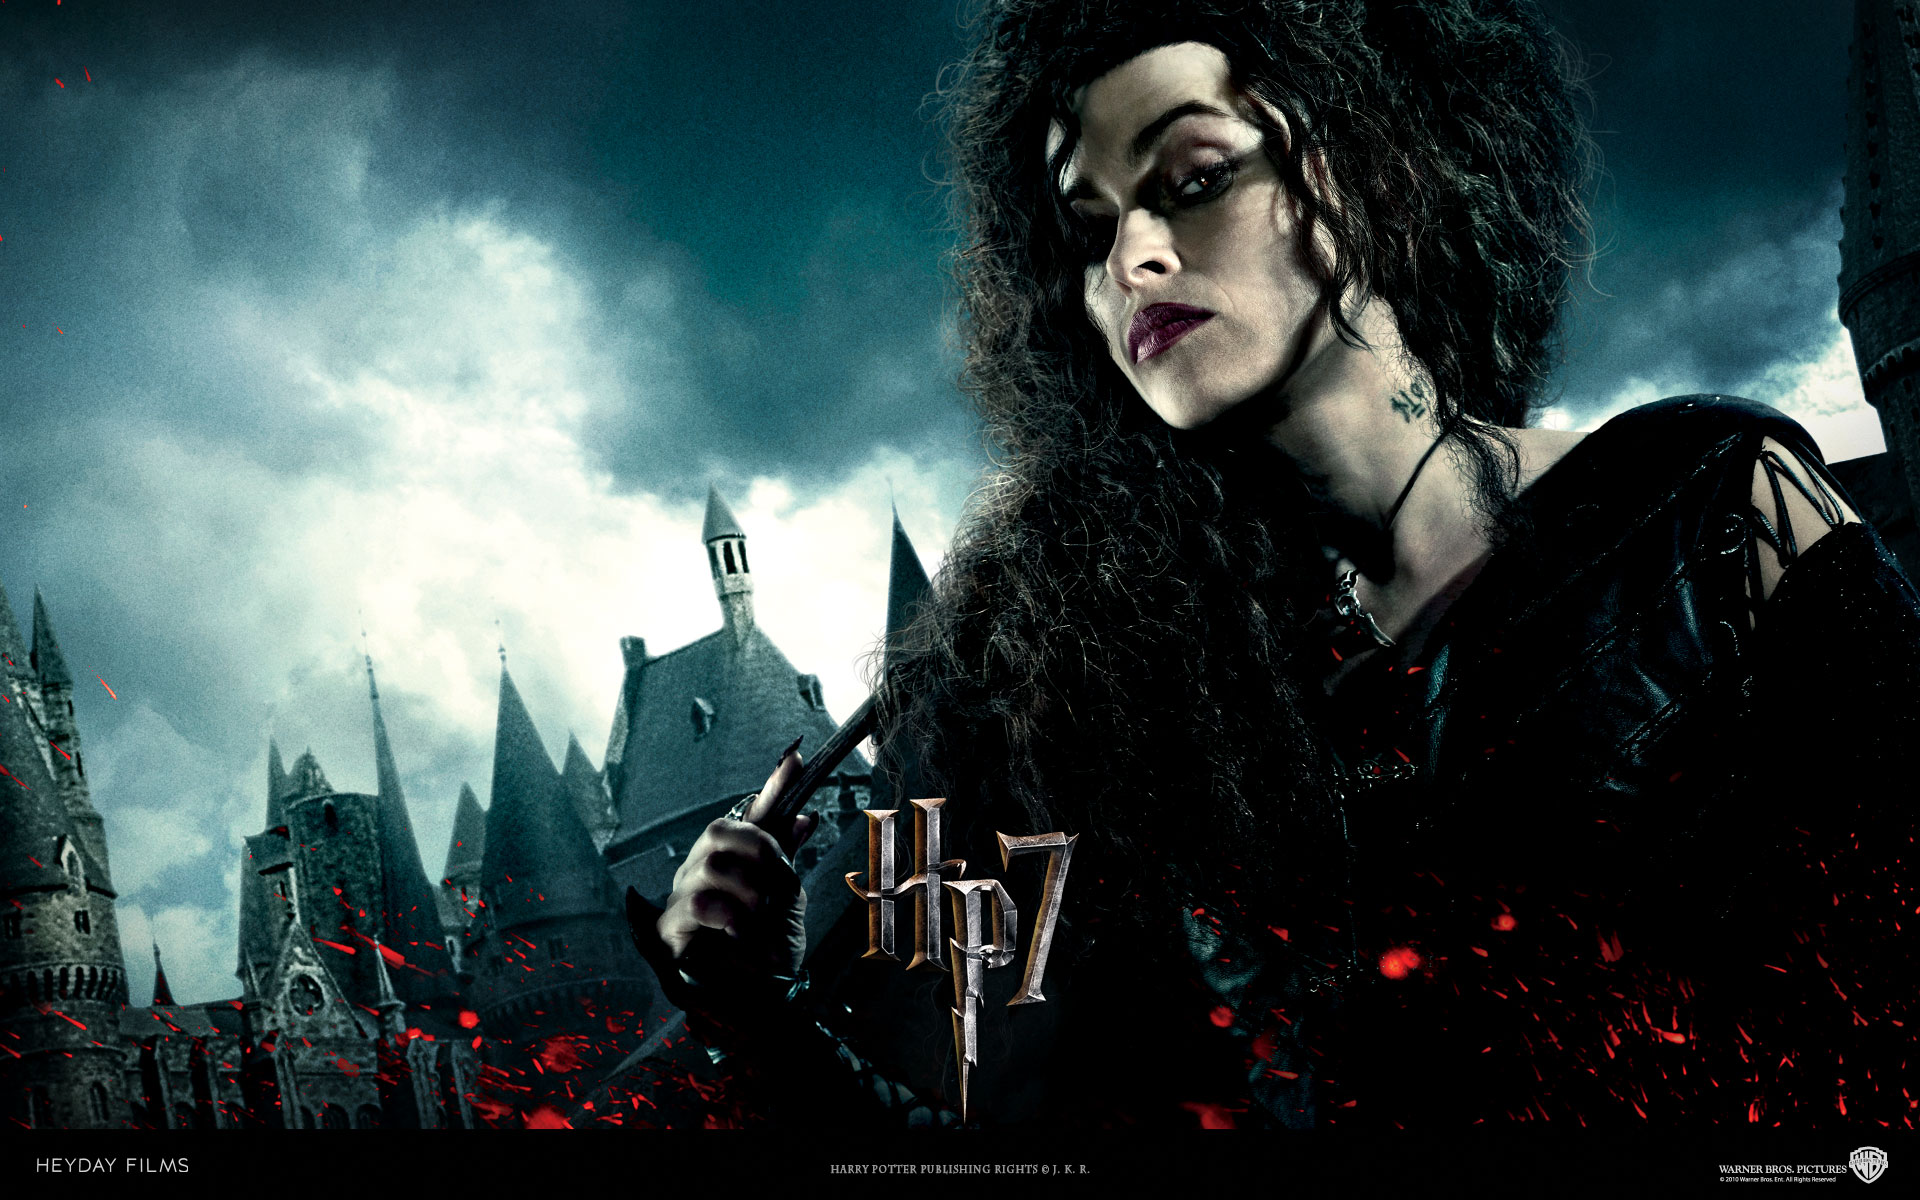 Hd wallpaper harry potter - Helena Bonham Carter Harry Potter Wallpaper 229224